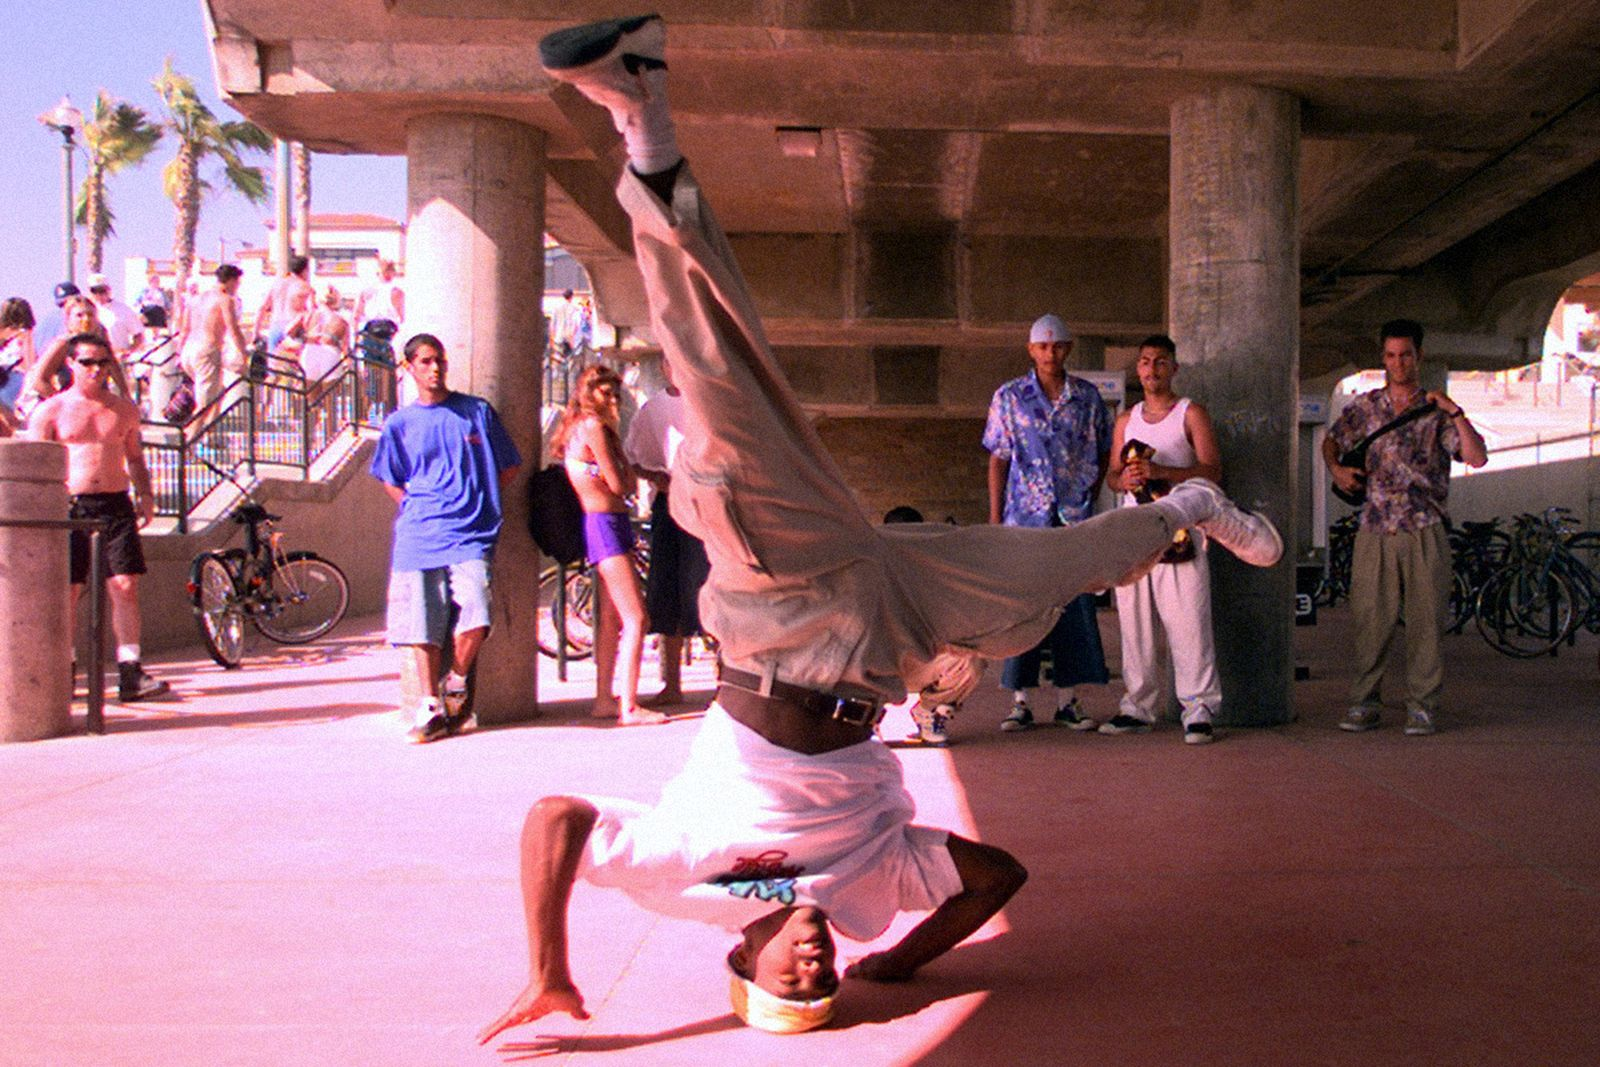 Surfing and breakdancing among four sports to win Paris 2024 spot